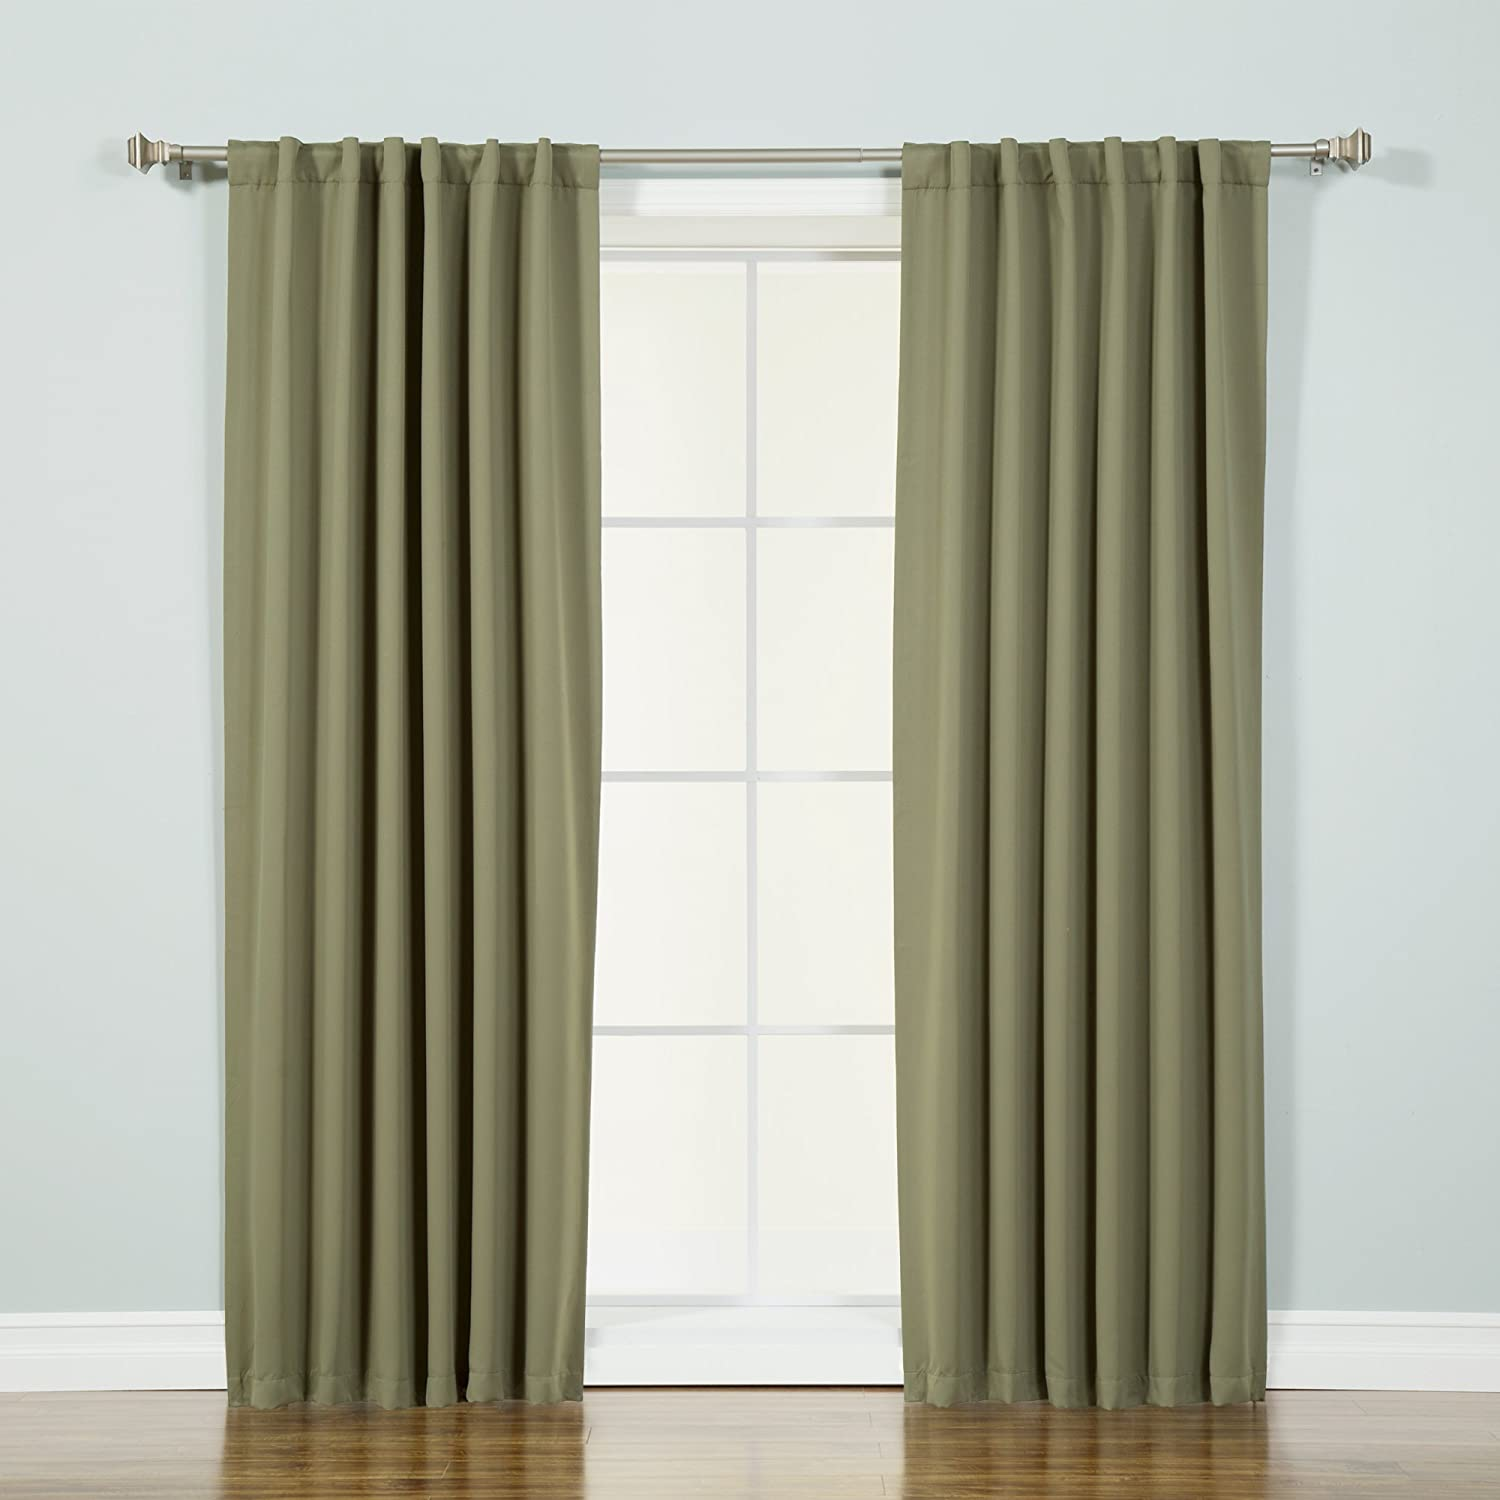 "Best Home Fashion Premium Thermal Insulated Blackout Curtains - Back Tab/Rod Pocket - Olive - 52"" W x 72"" L - (Set of 2 Panels)"